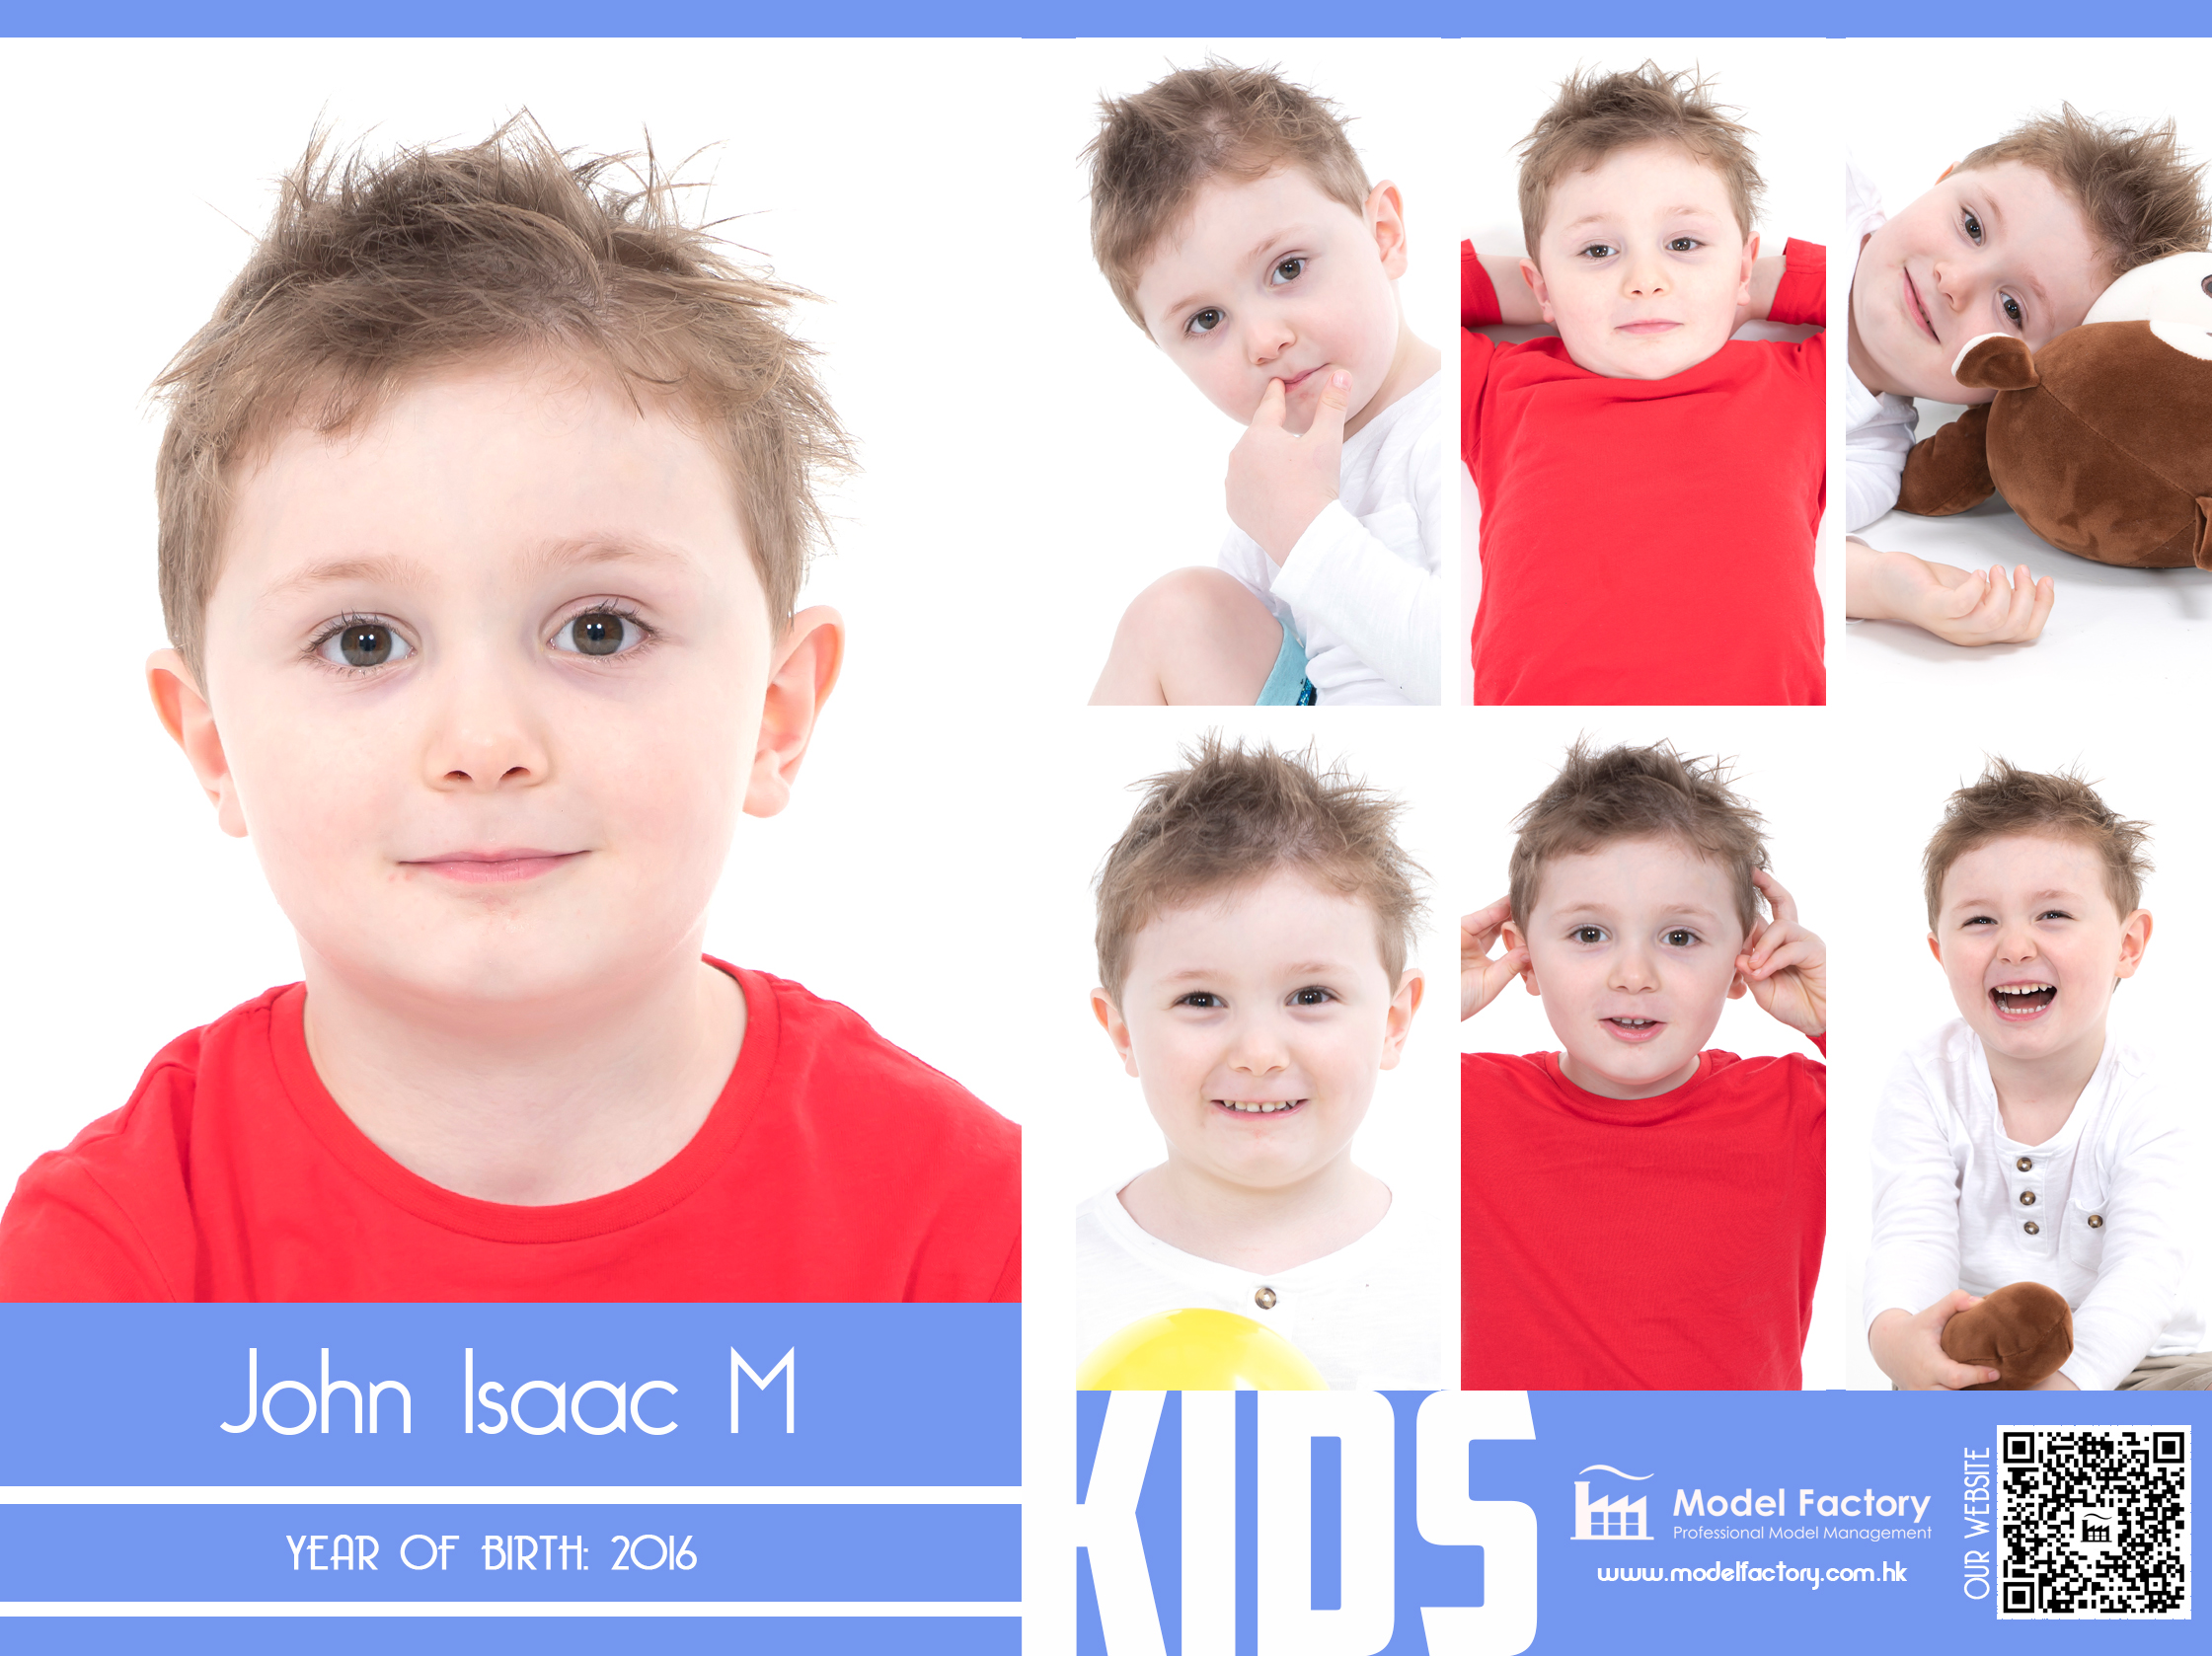 Model Factory Caucasian Kids John Isaac M